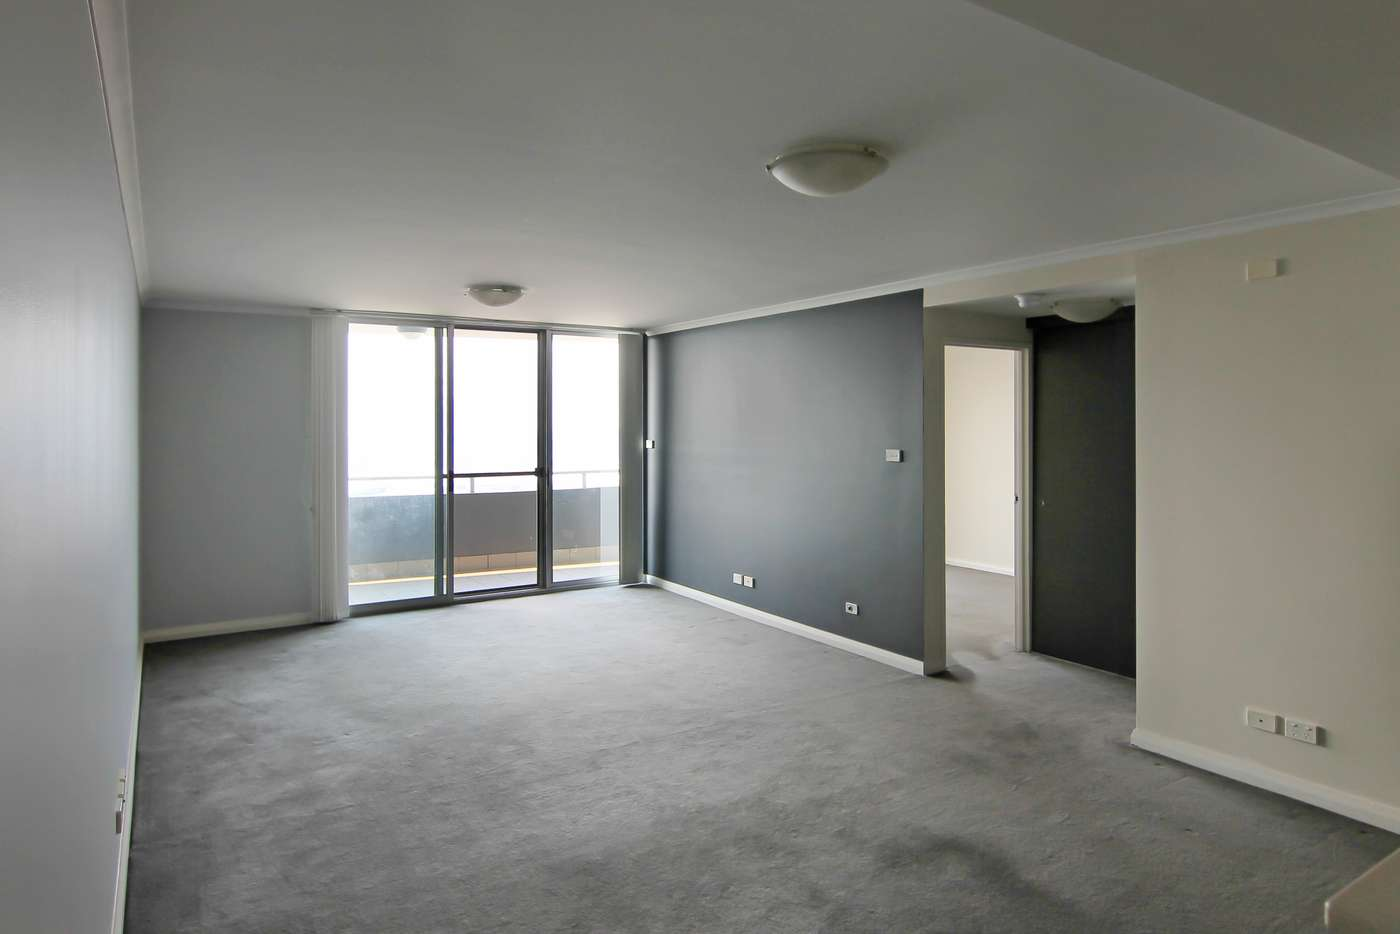 Seventh view of Homely apartment listing, 712/316 Charlestown Road, Charlestown NSW 2290